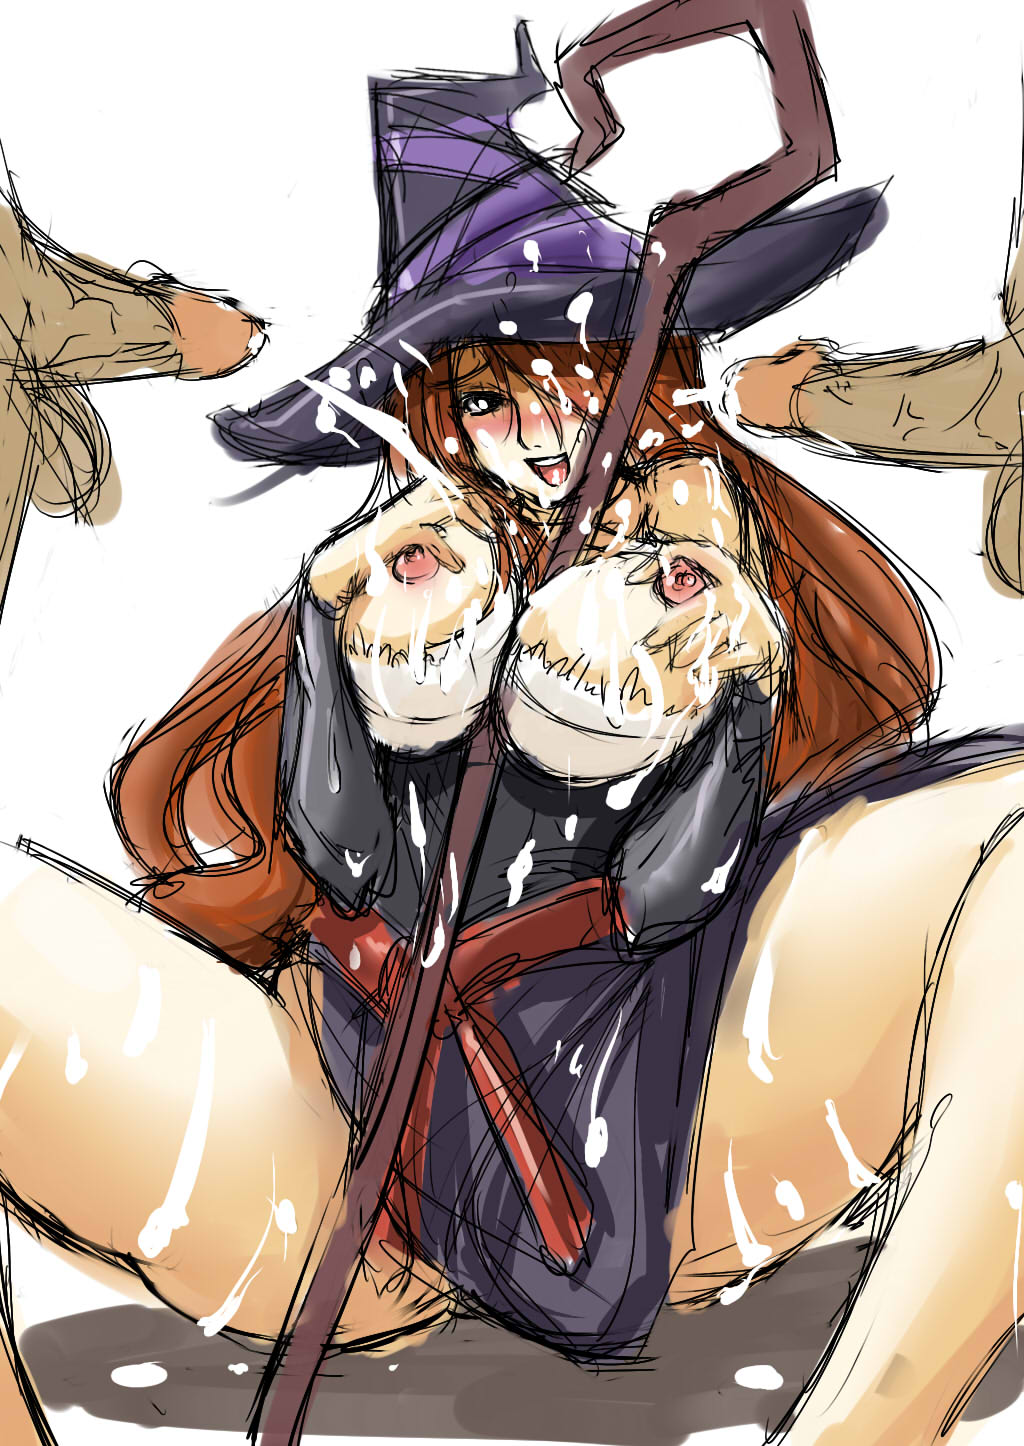 crown sorceress dragon's Devil may cry 4 hentai